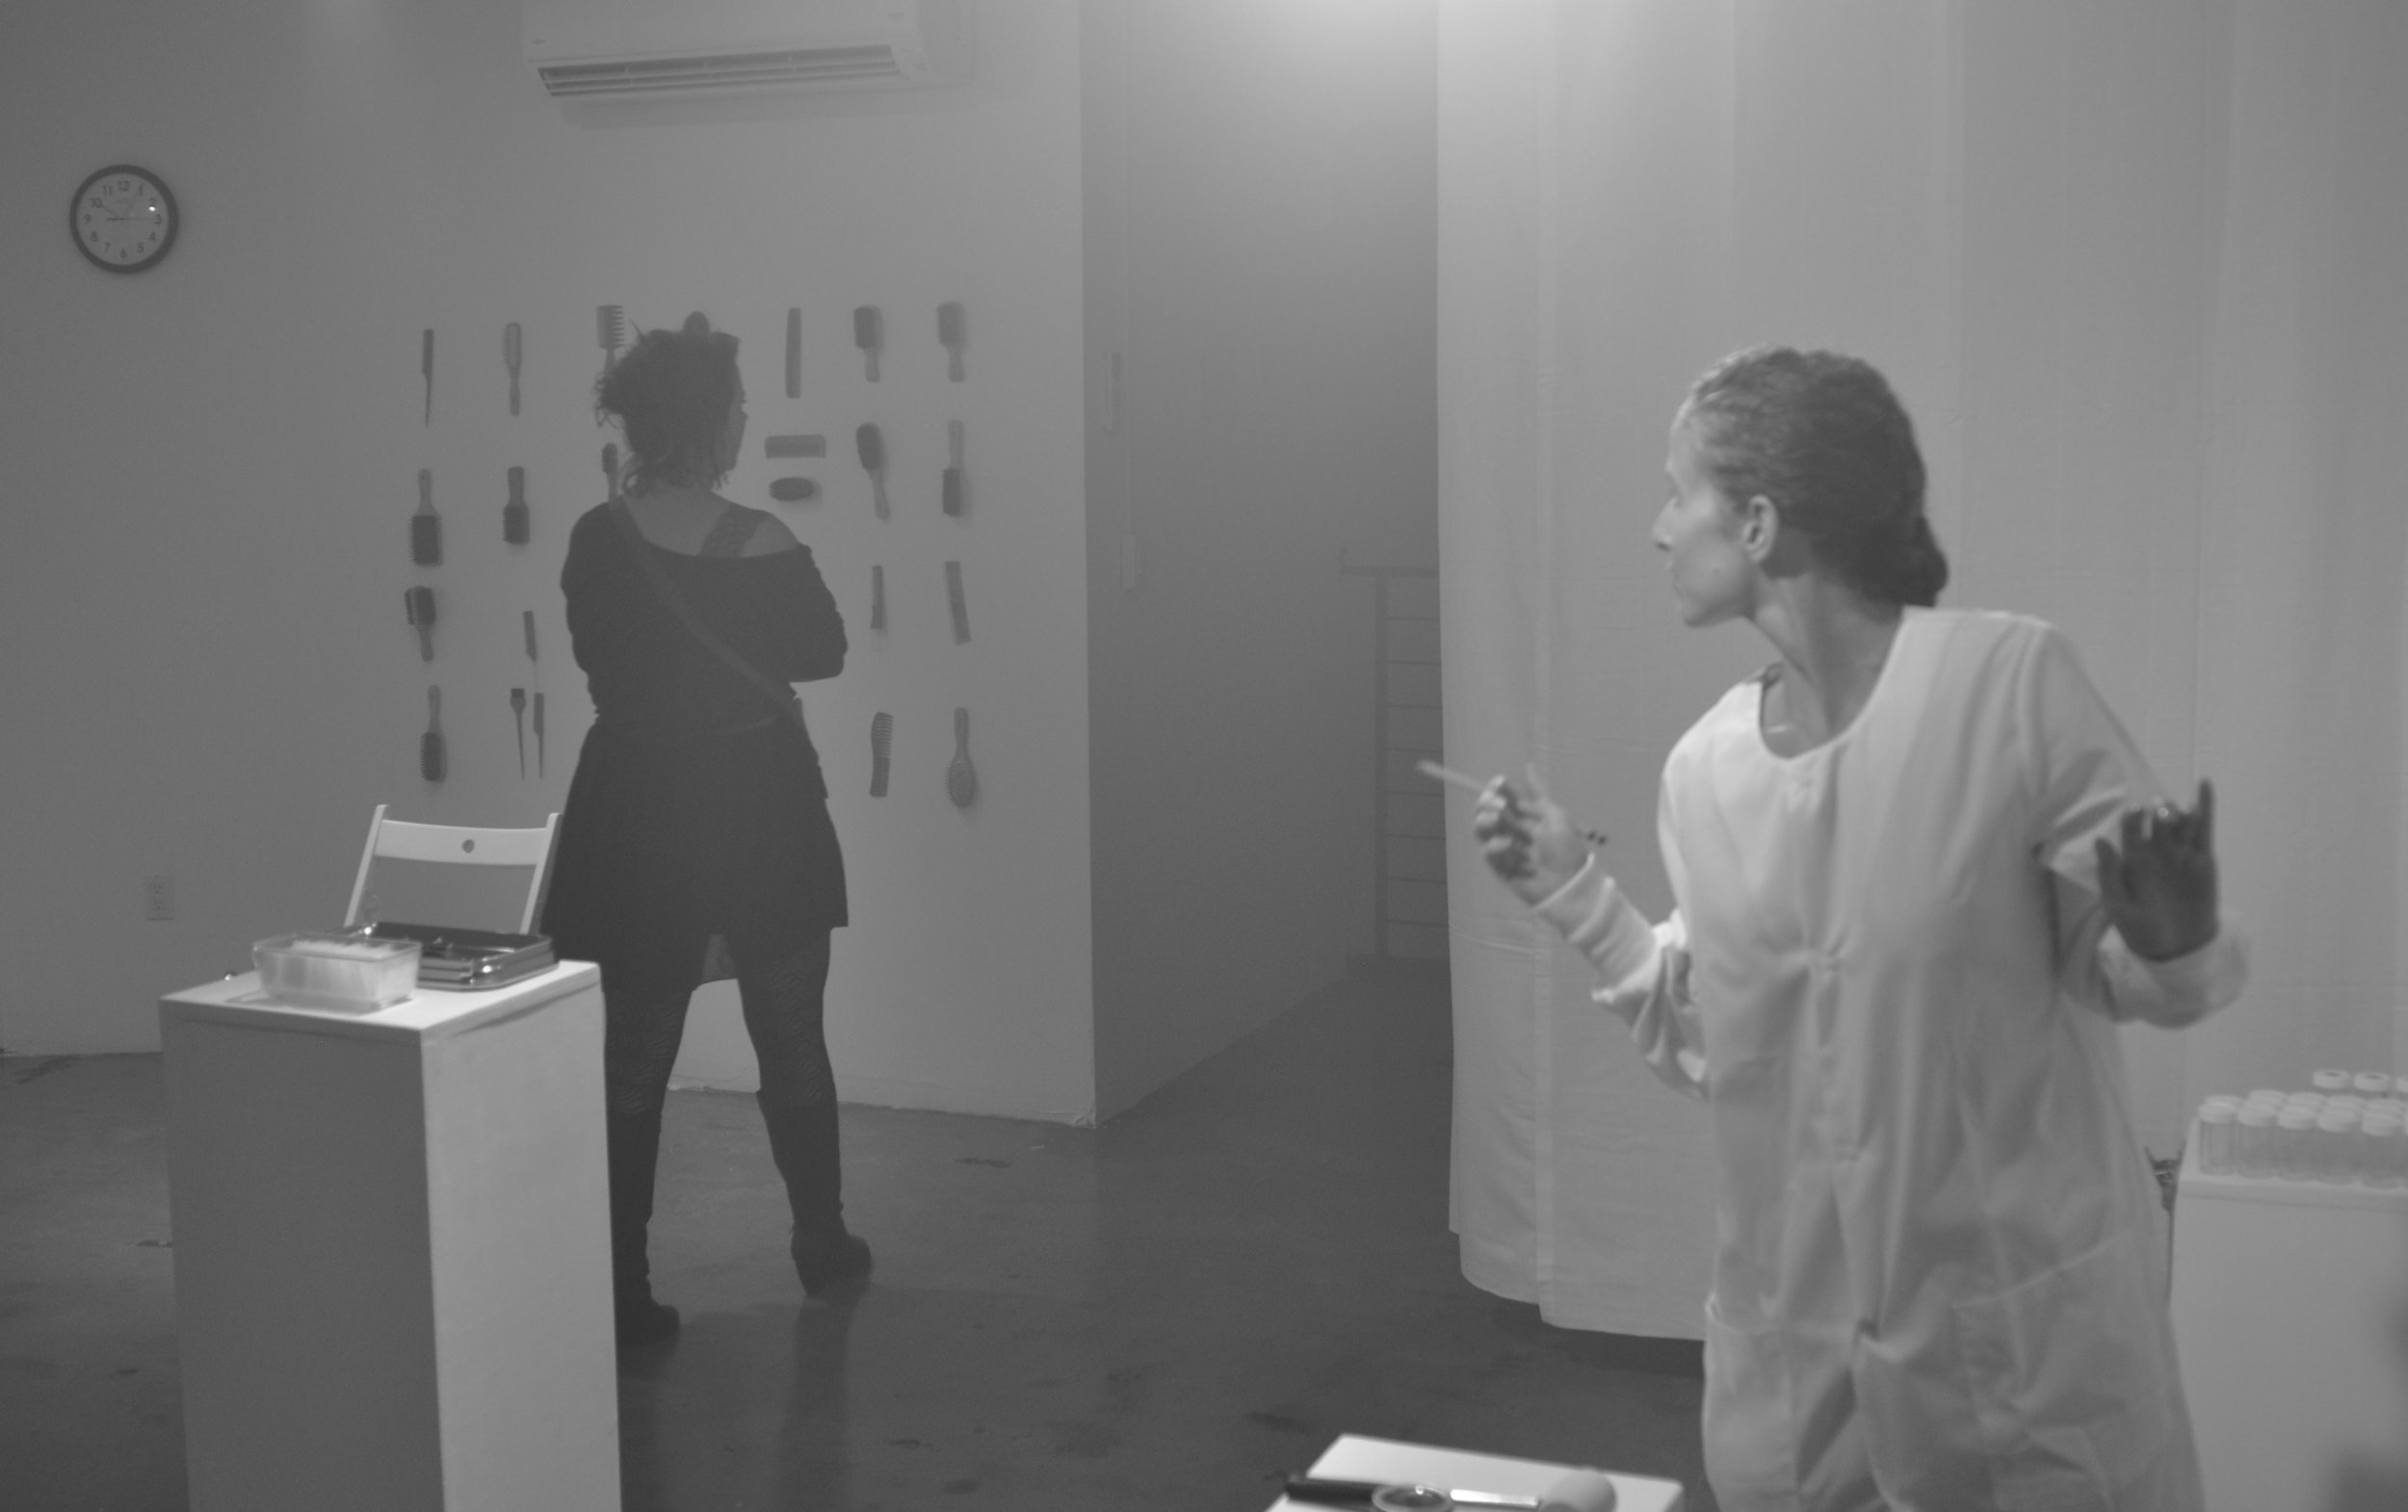 Public Safety, 24 hour performance by Lital Dotan (2012)